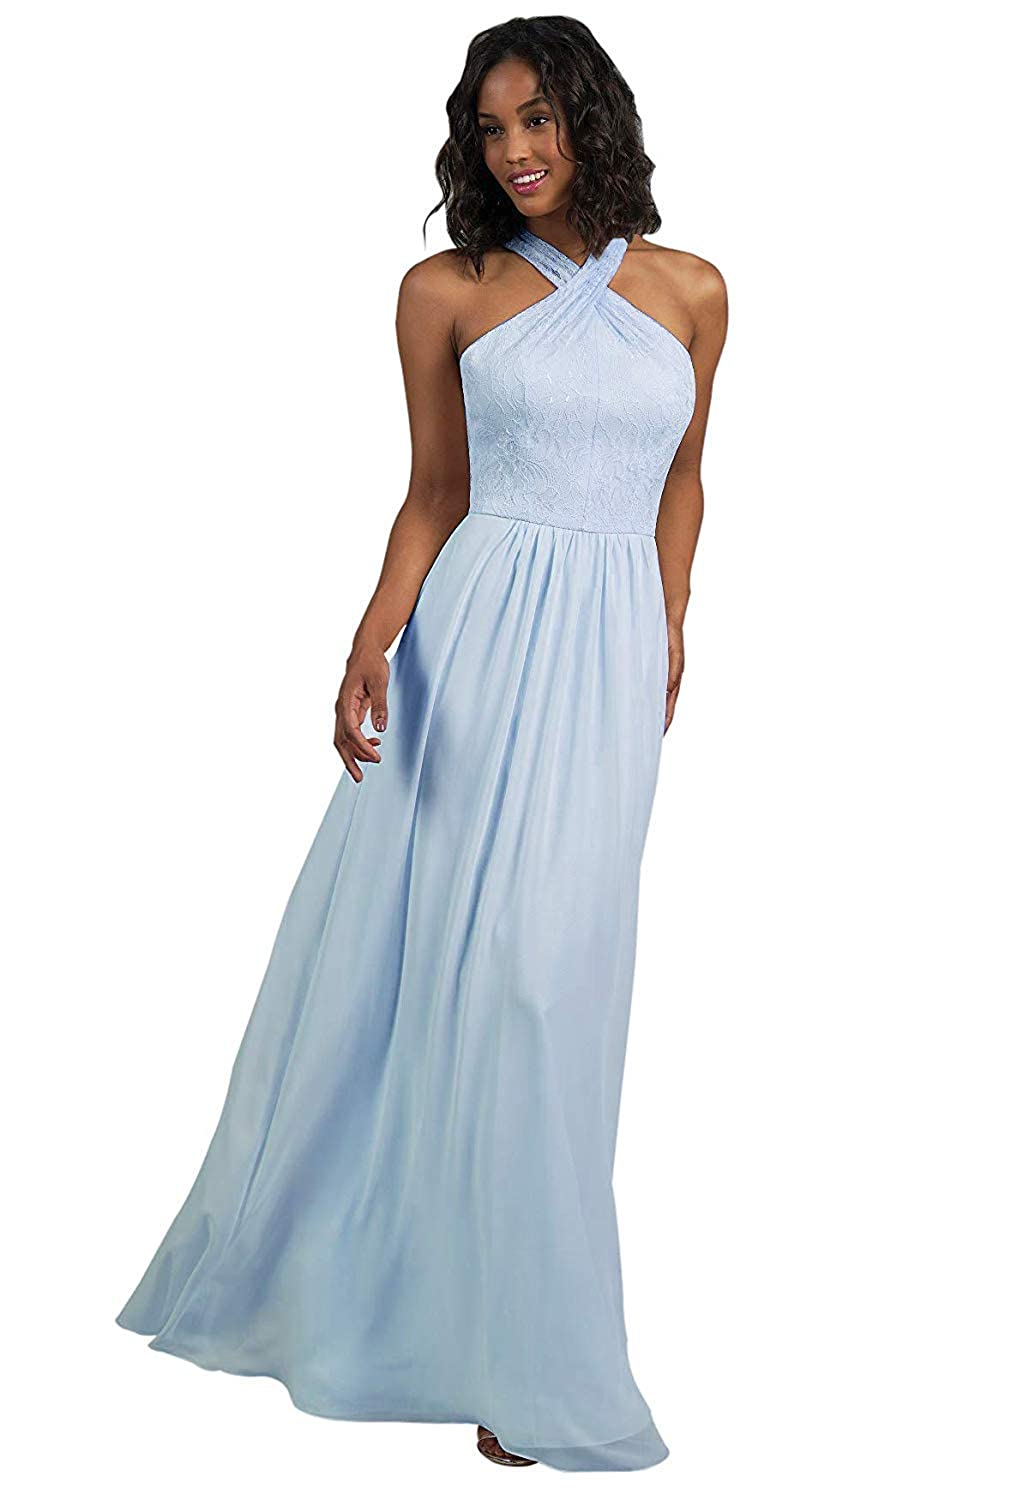 Bady bluee RTTUTED Lace Long Bridesmaid Dresses with CrissCross Neckline Prom Evening Gown